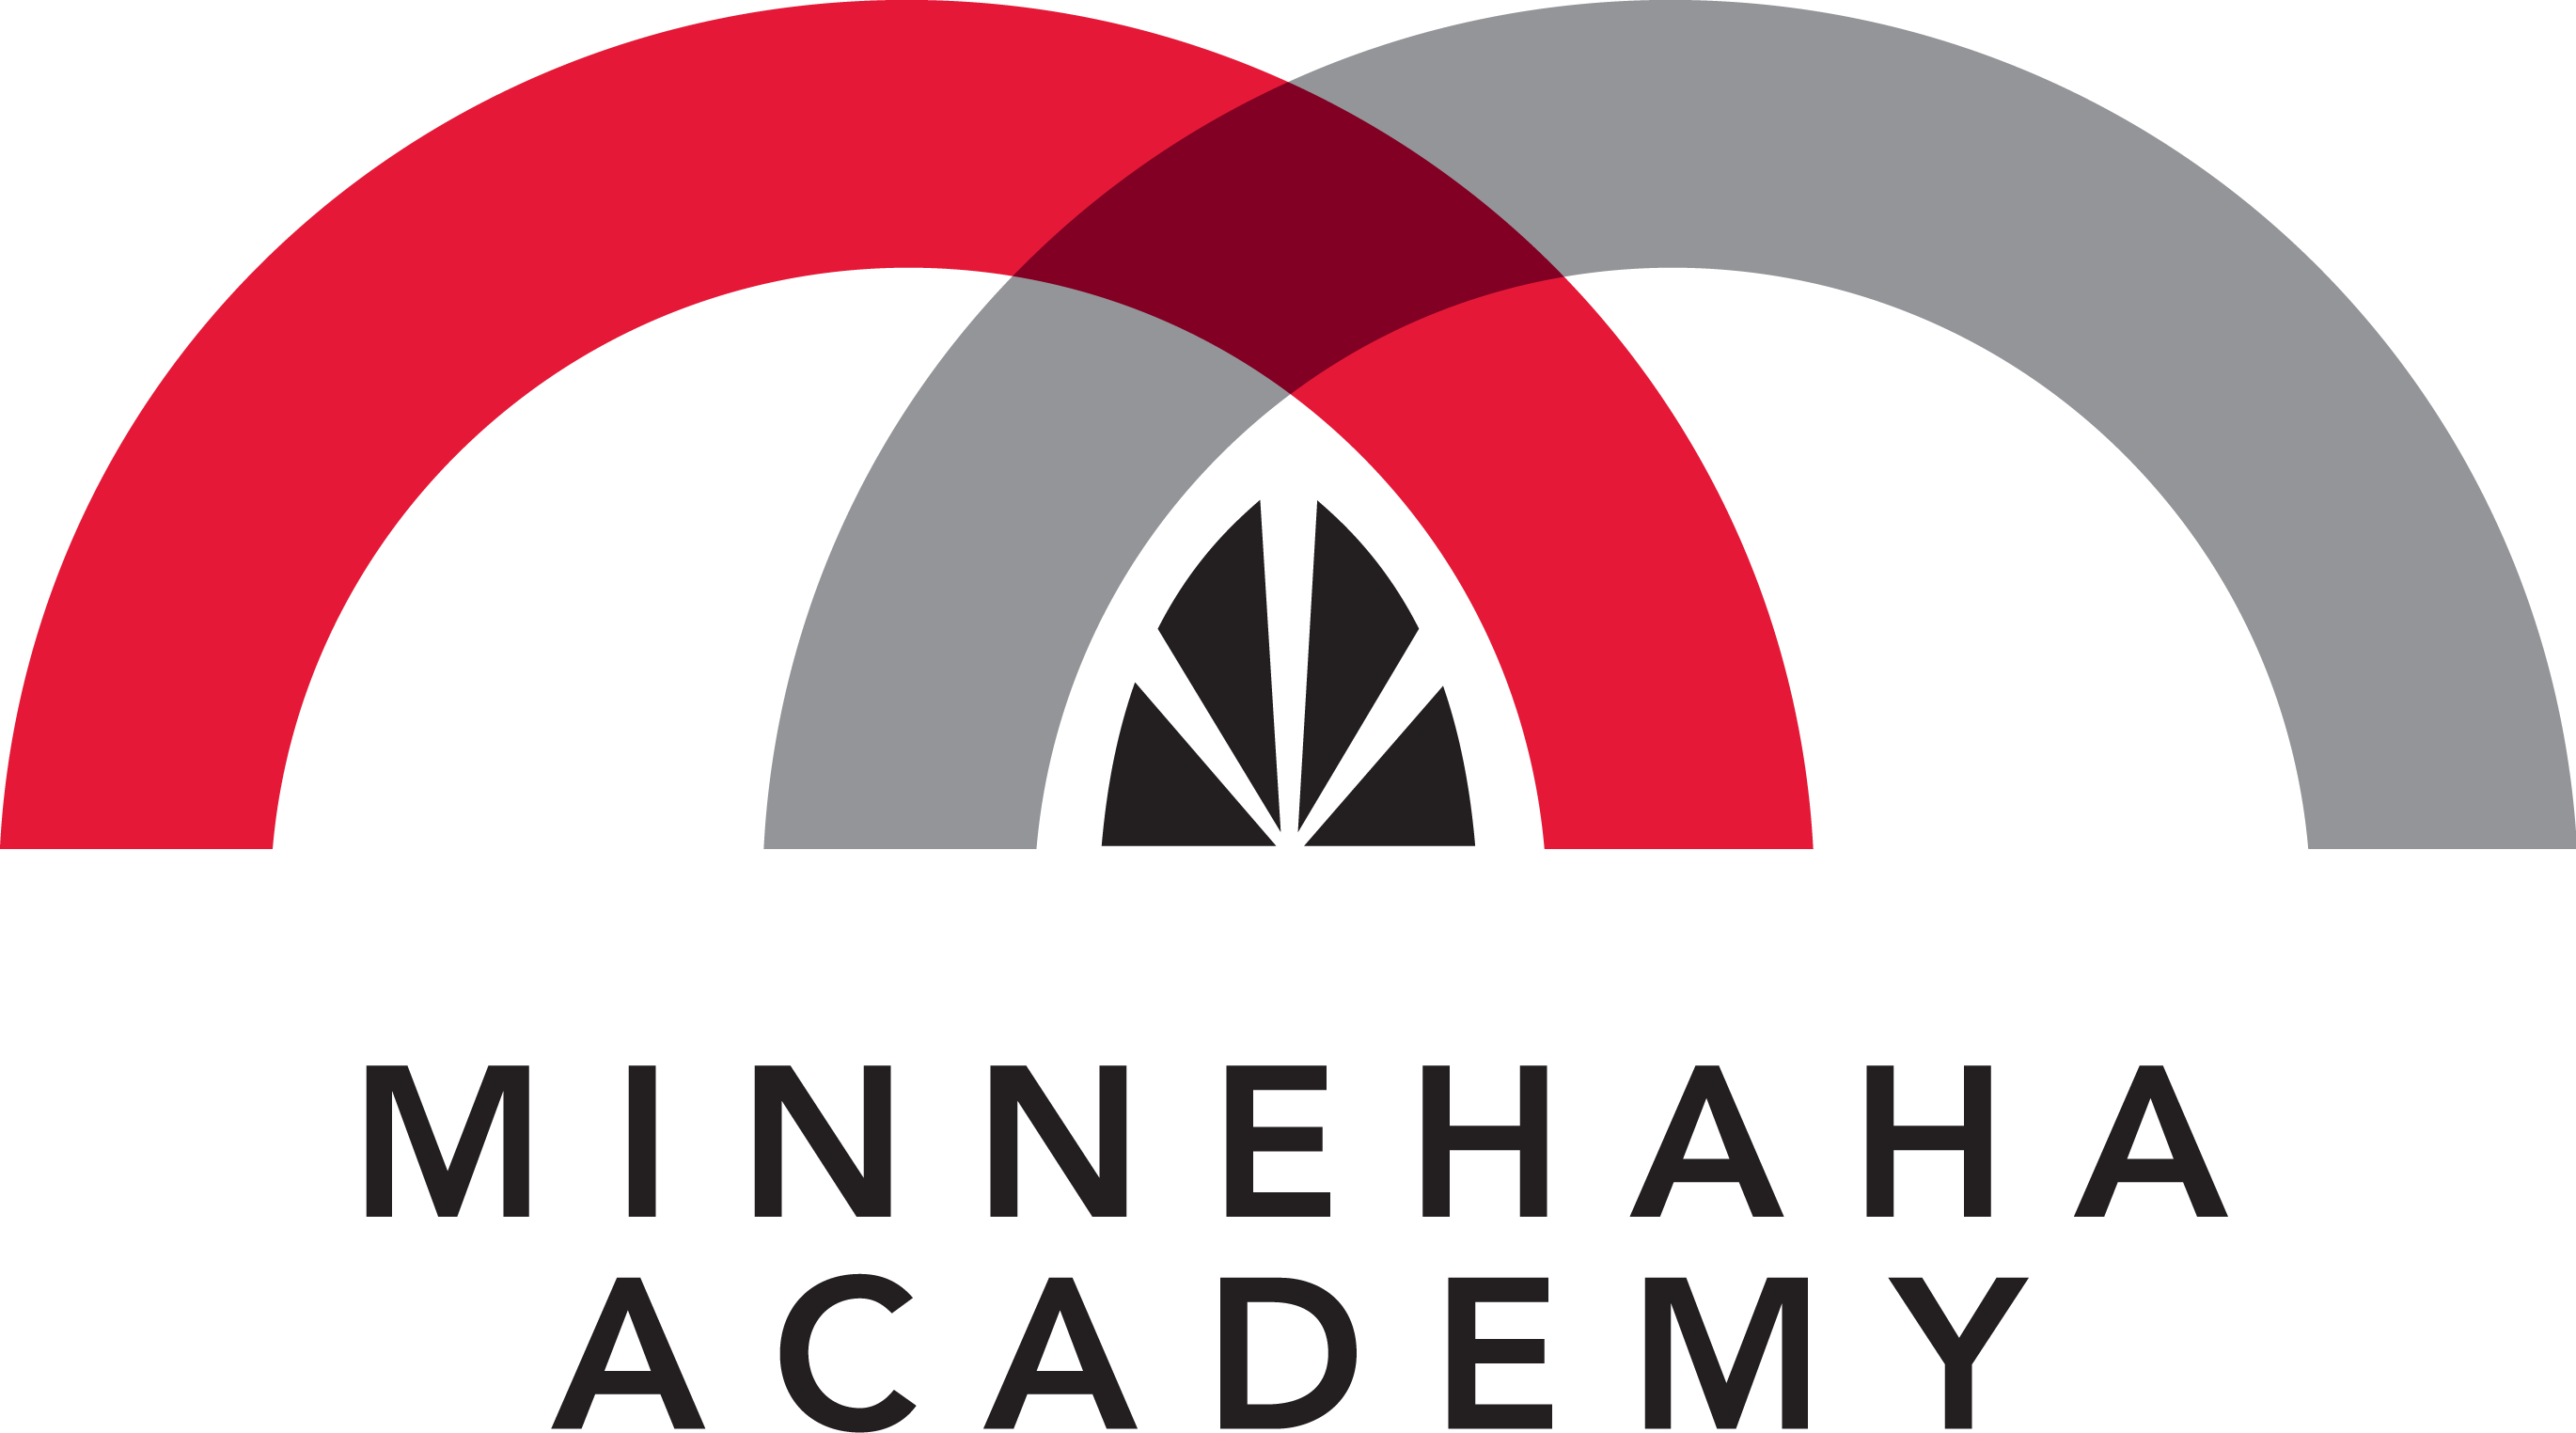 Minnehaha logo color